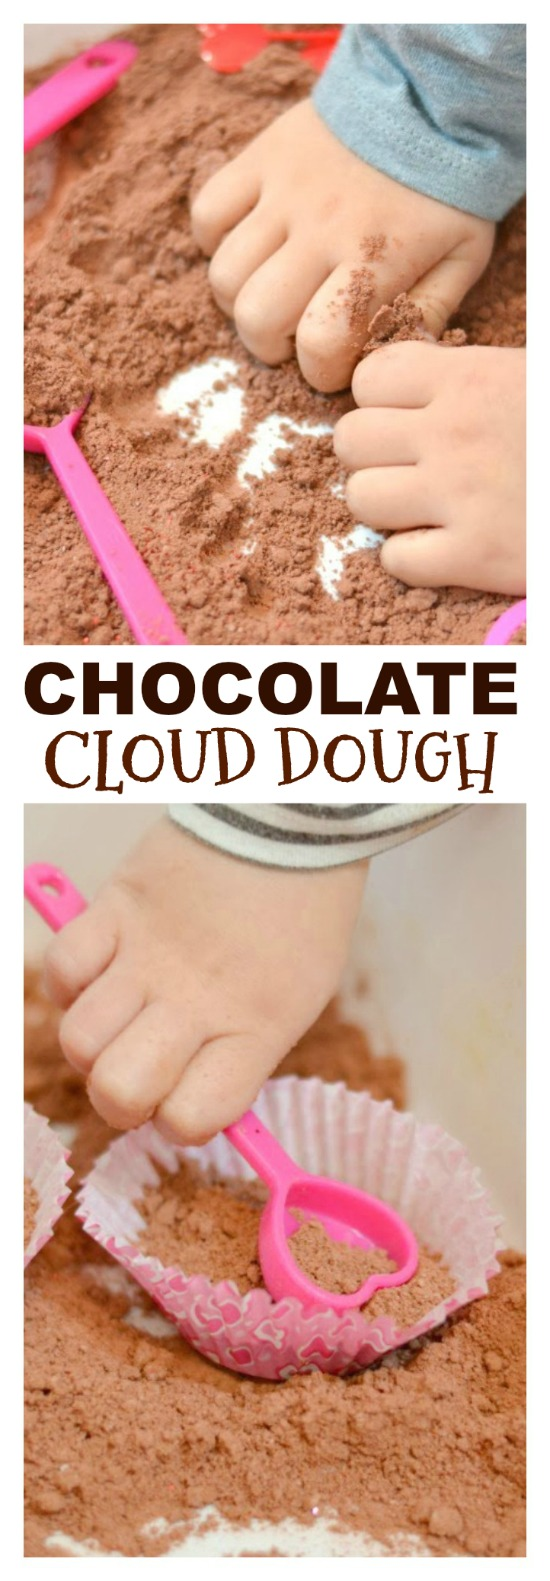 Chocolate cloud dough feels like fluffy clouds in your hands, yet it is mold-able.  So fun!  Great for Valentine's themed play